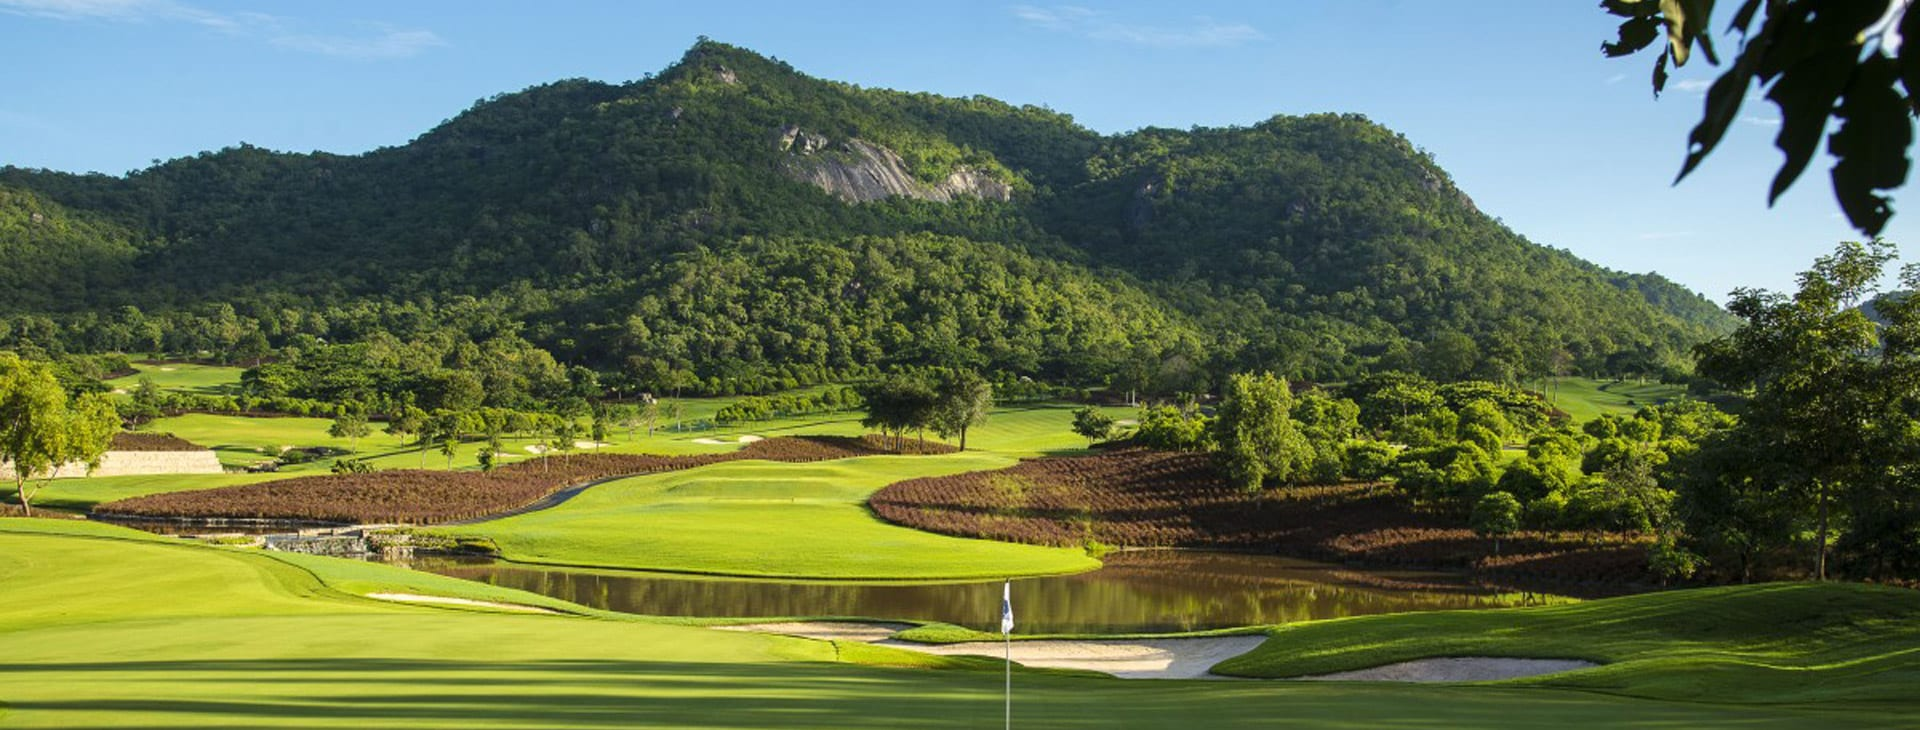 Best Of Hua Hin 6 Nights 4 Rounds Thailand Golf